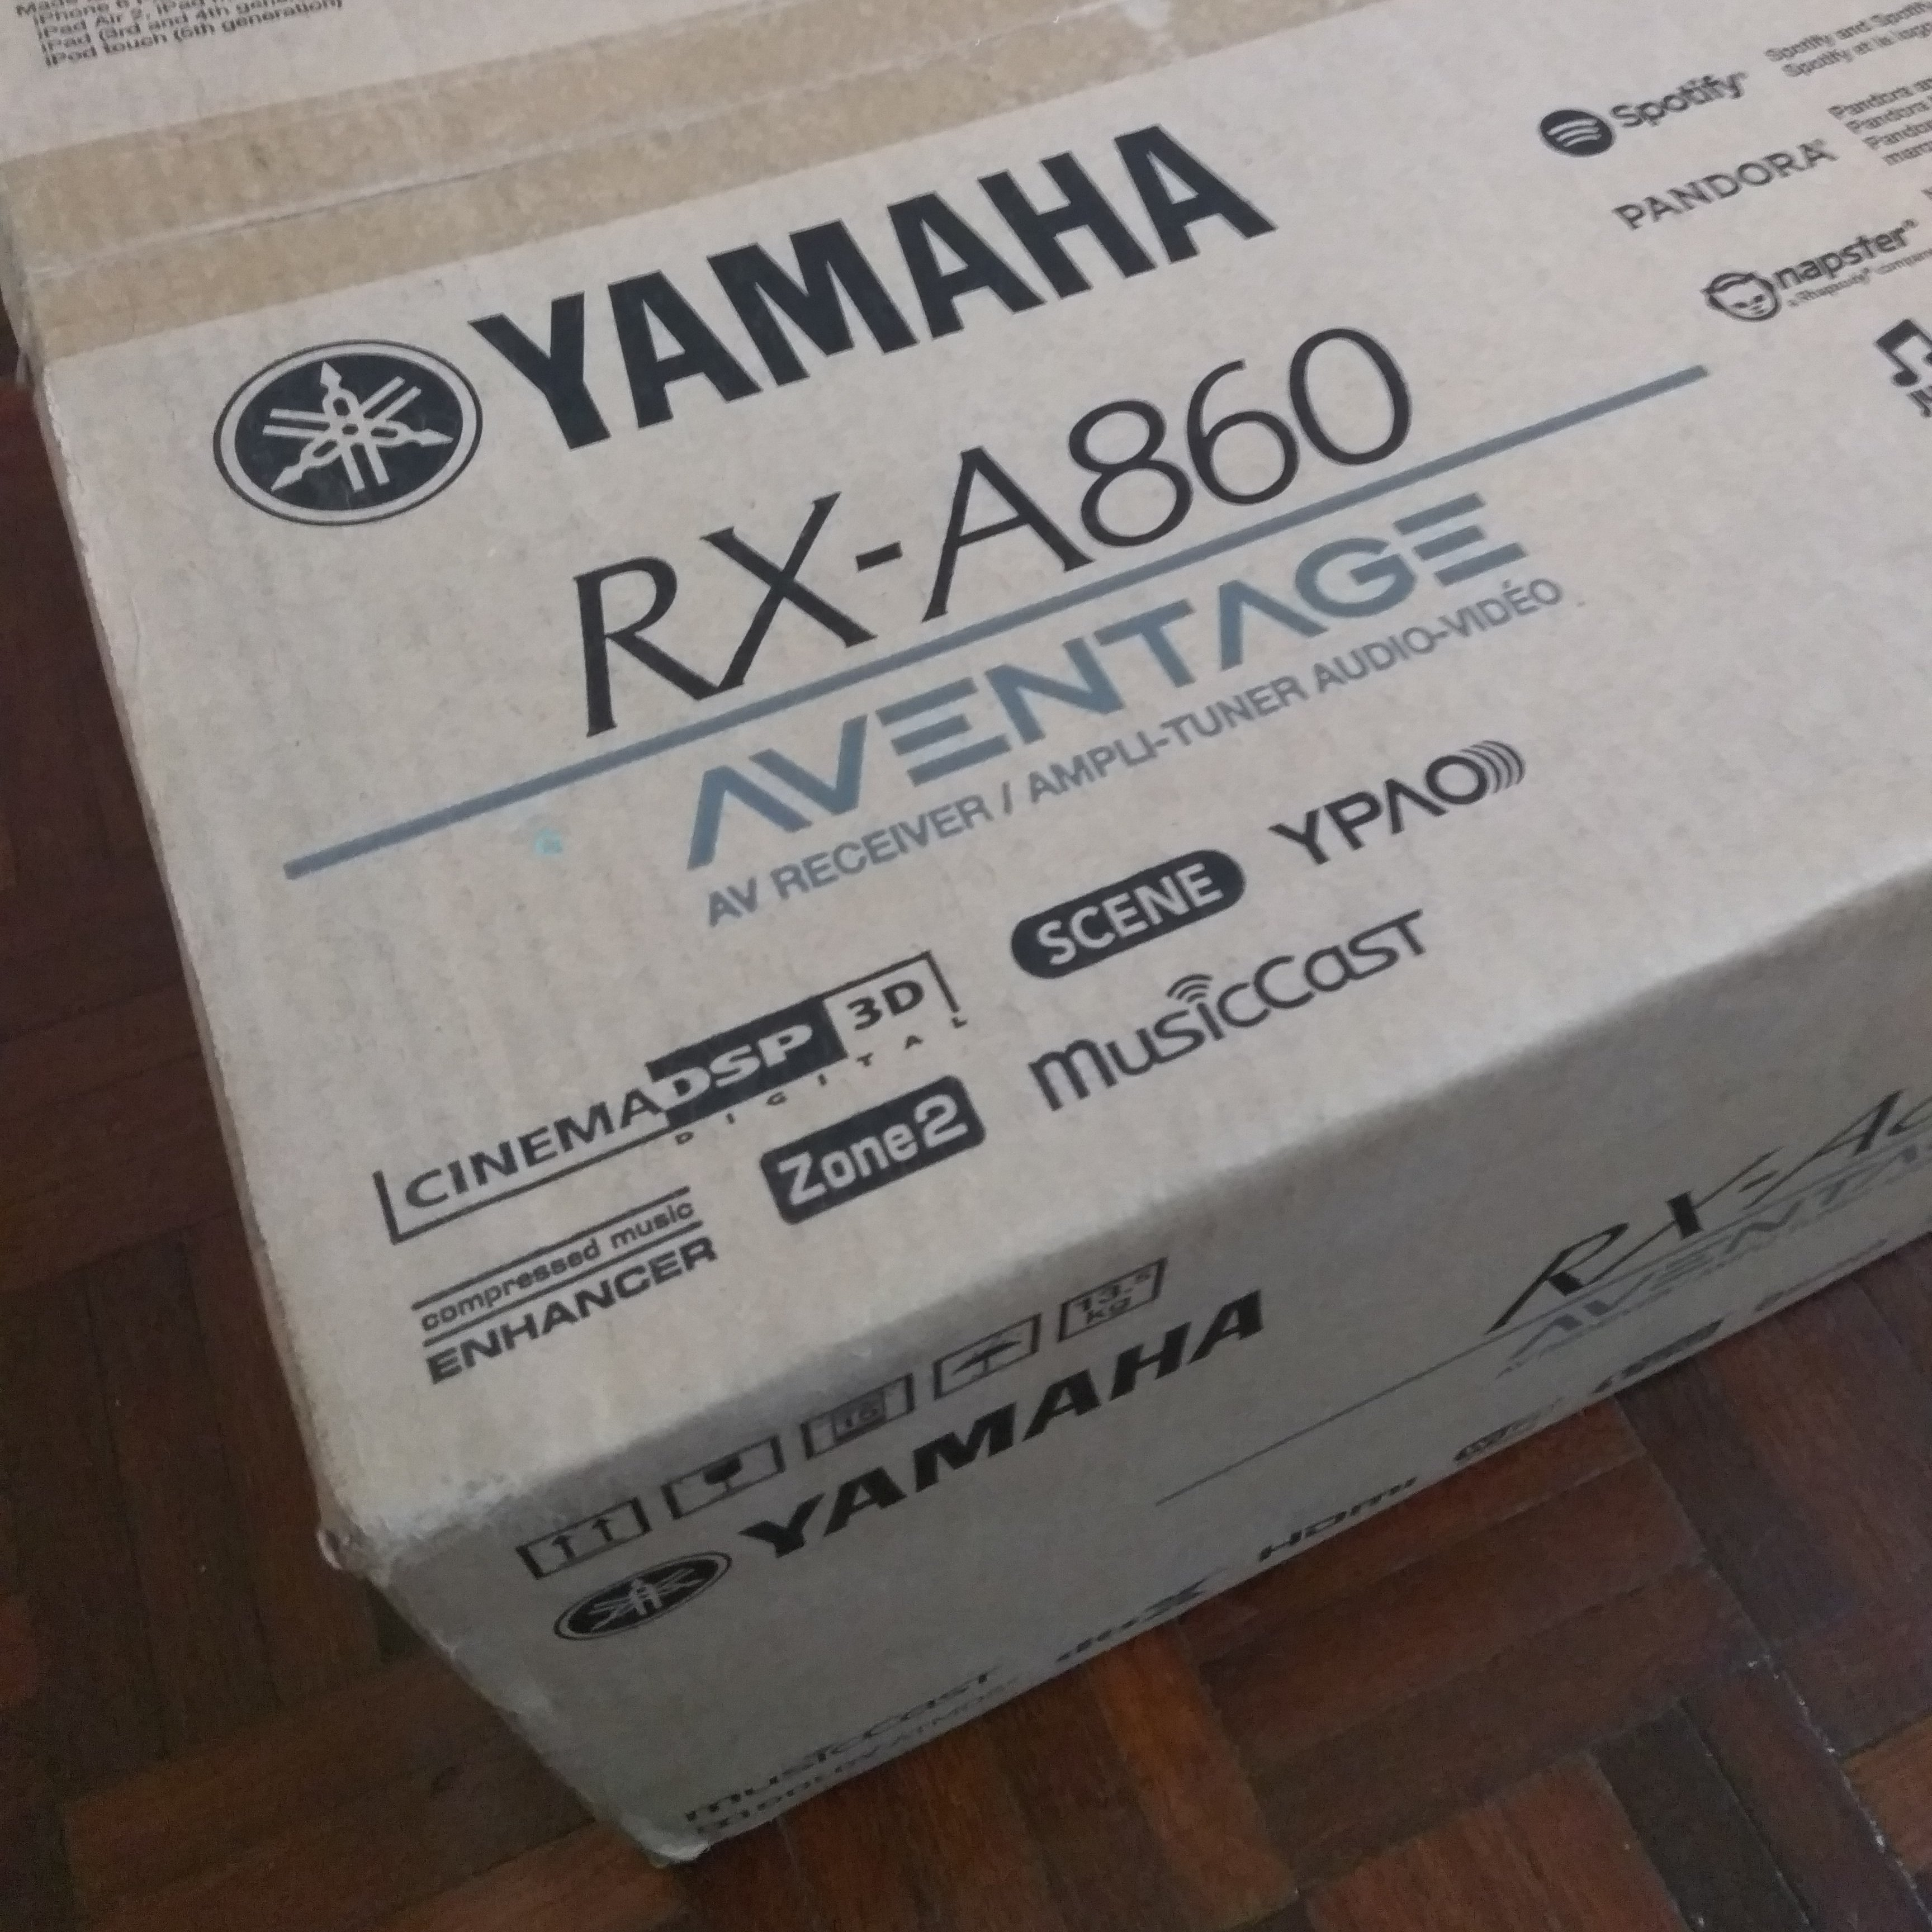 Yamaha RX-A860 is fun